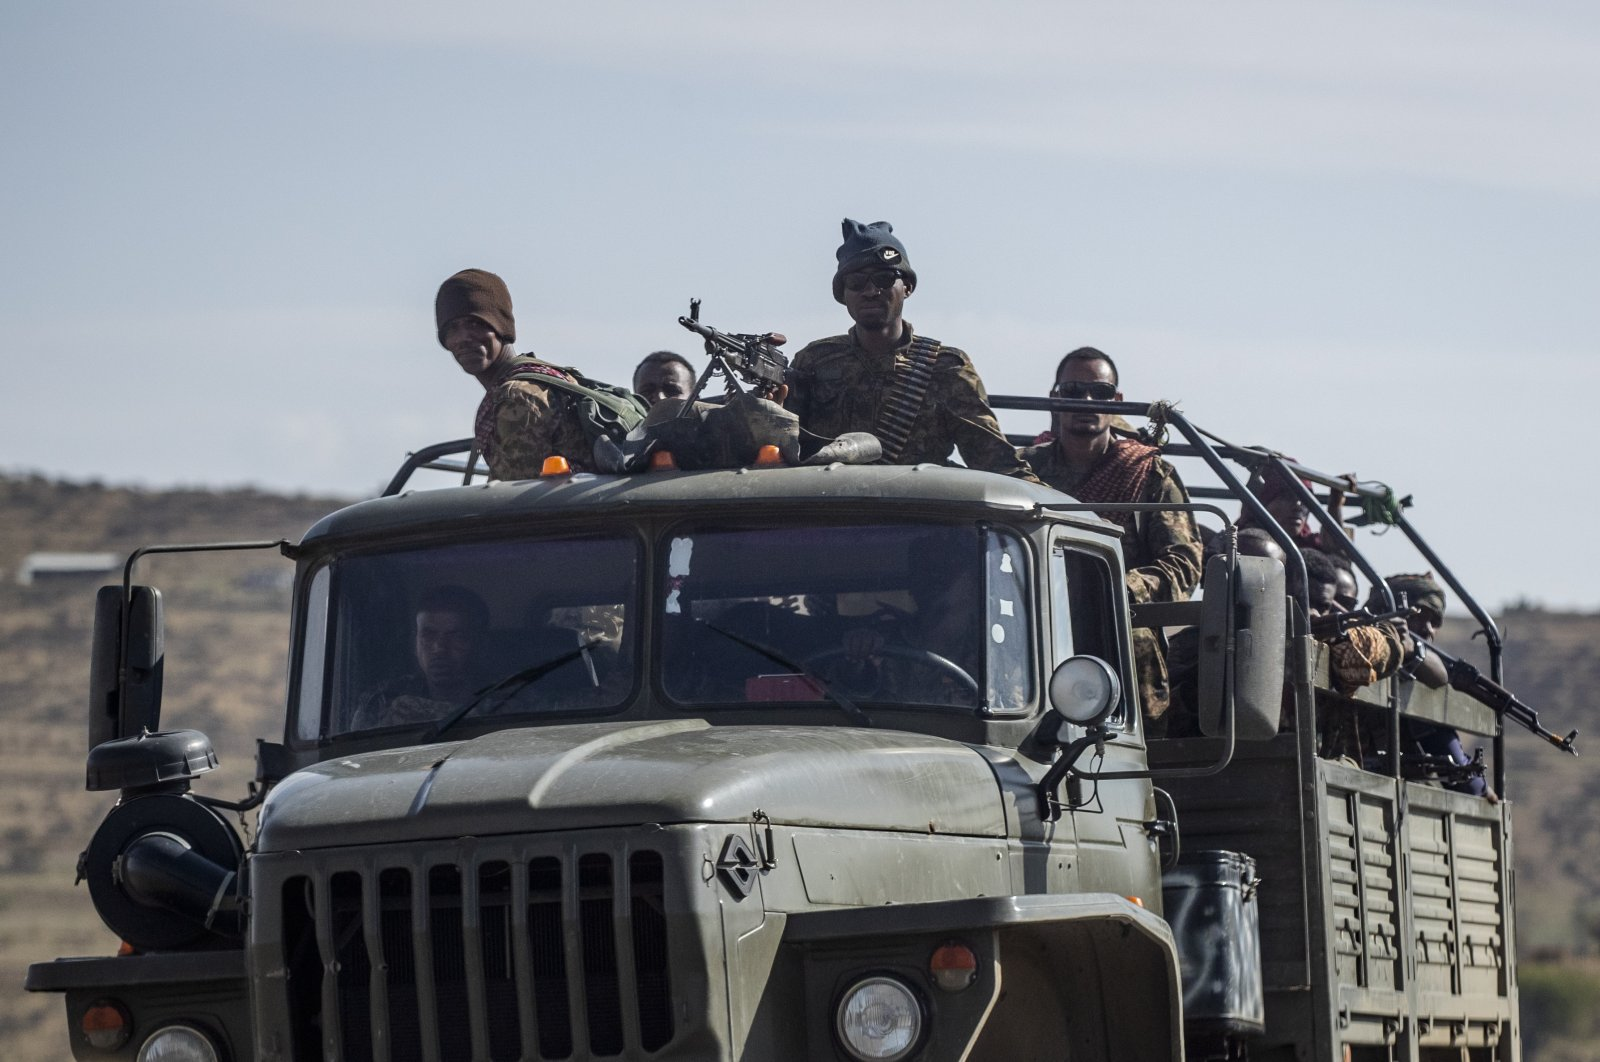 Ethiopian government soldiers ride in the back of a truck on a road near Agula, north of Mekele, in the Tigray region of northern Ethiopia, May 8, 2021. (AP Photo)